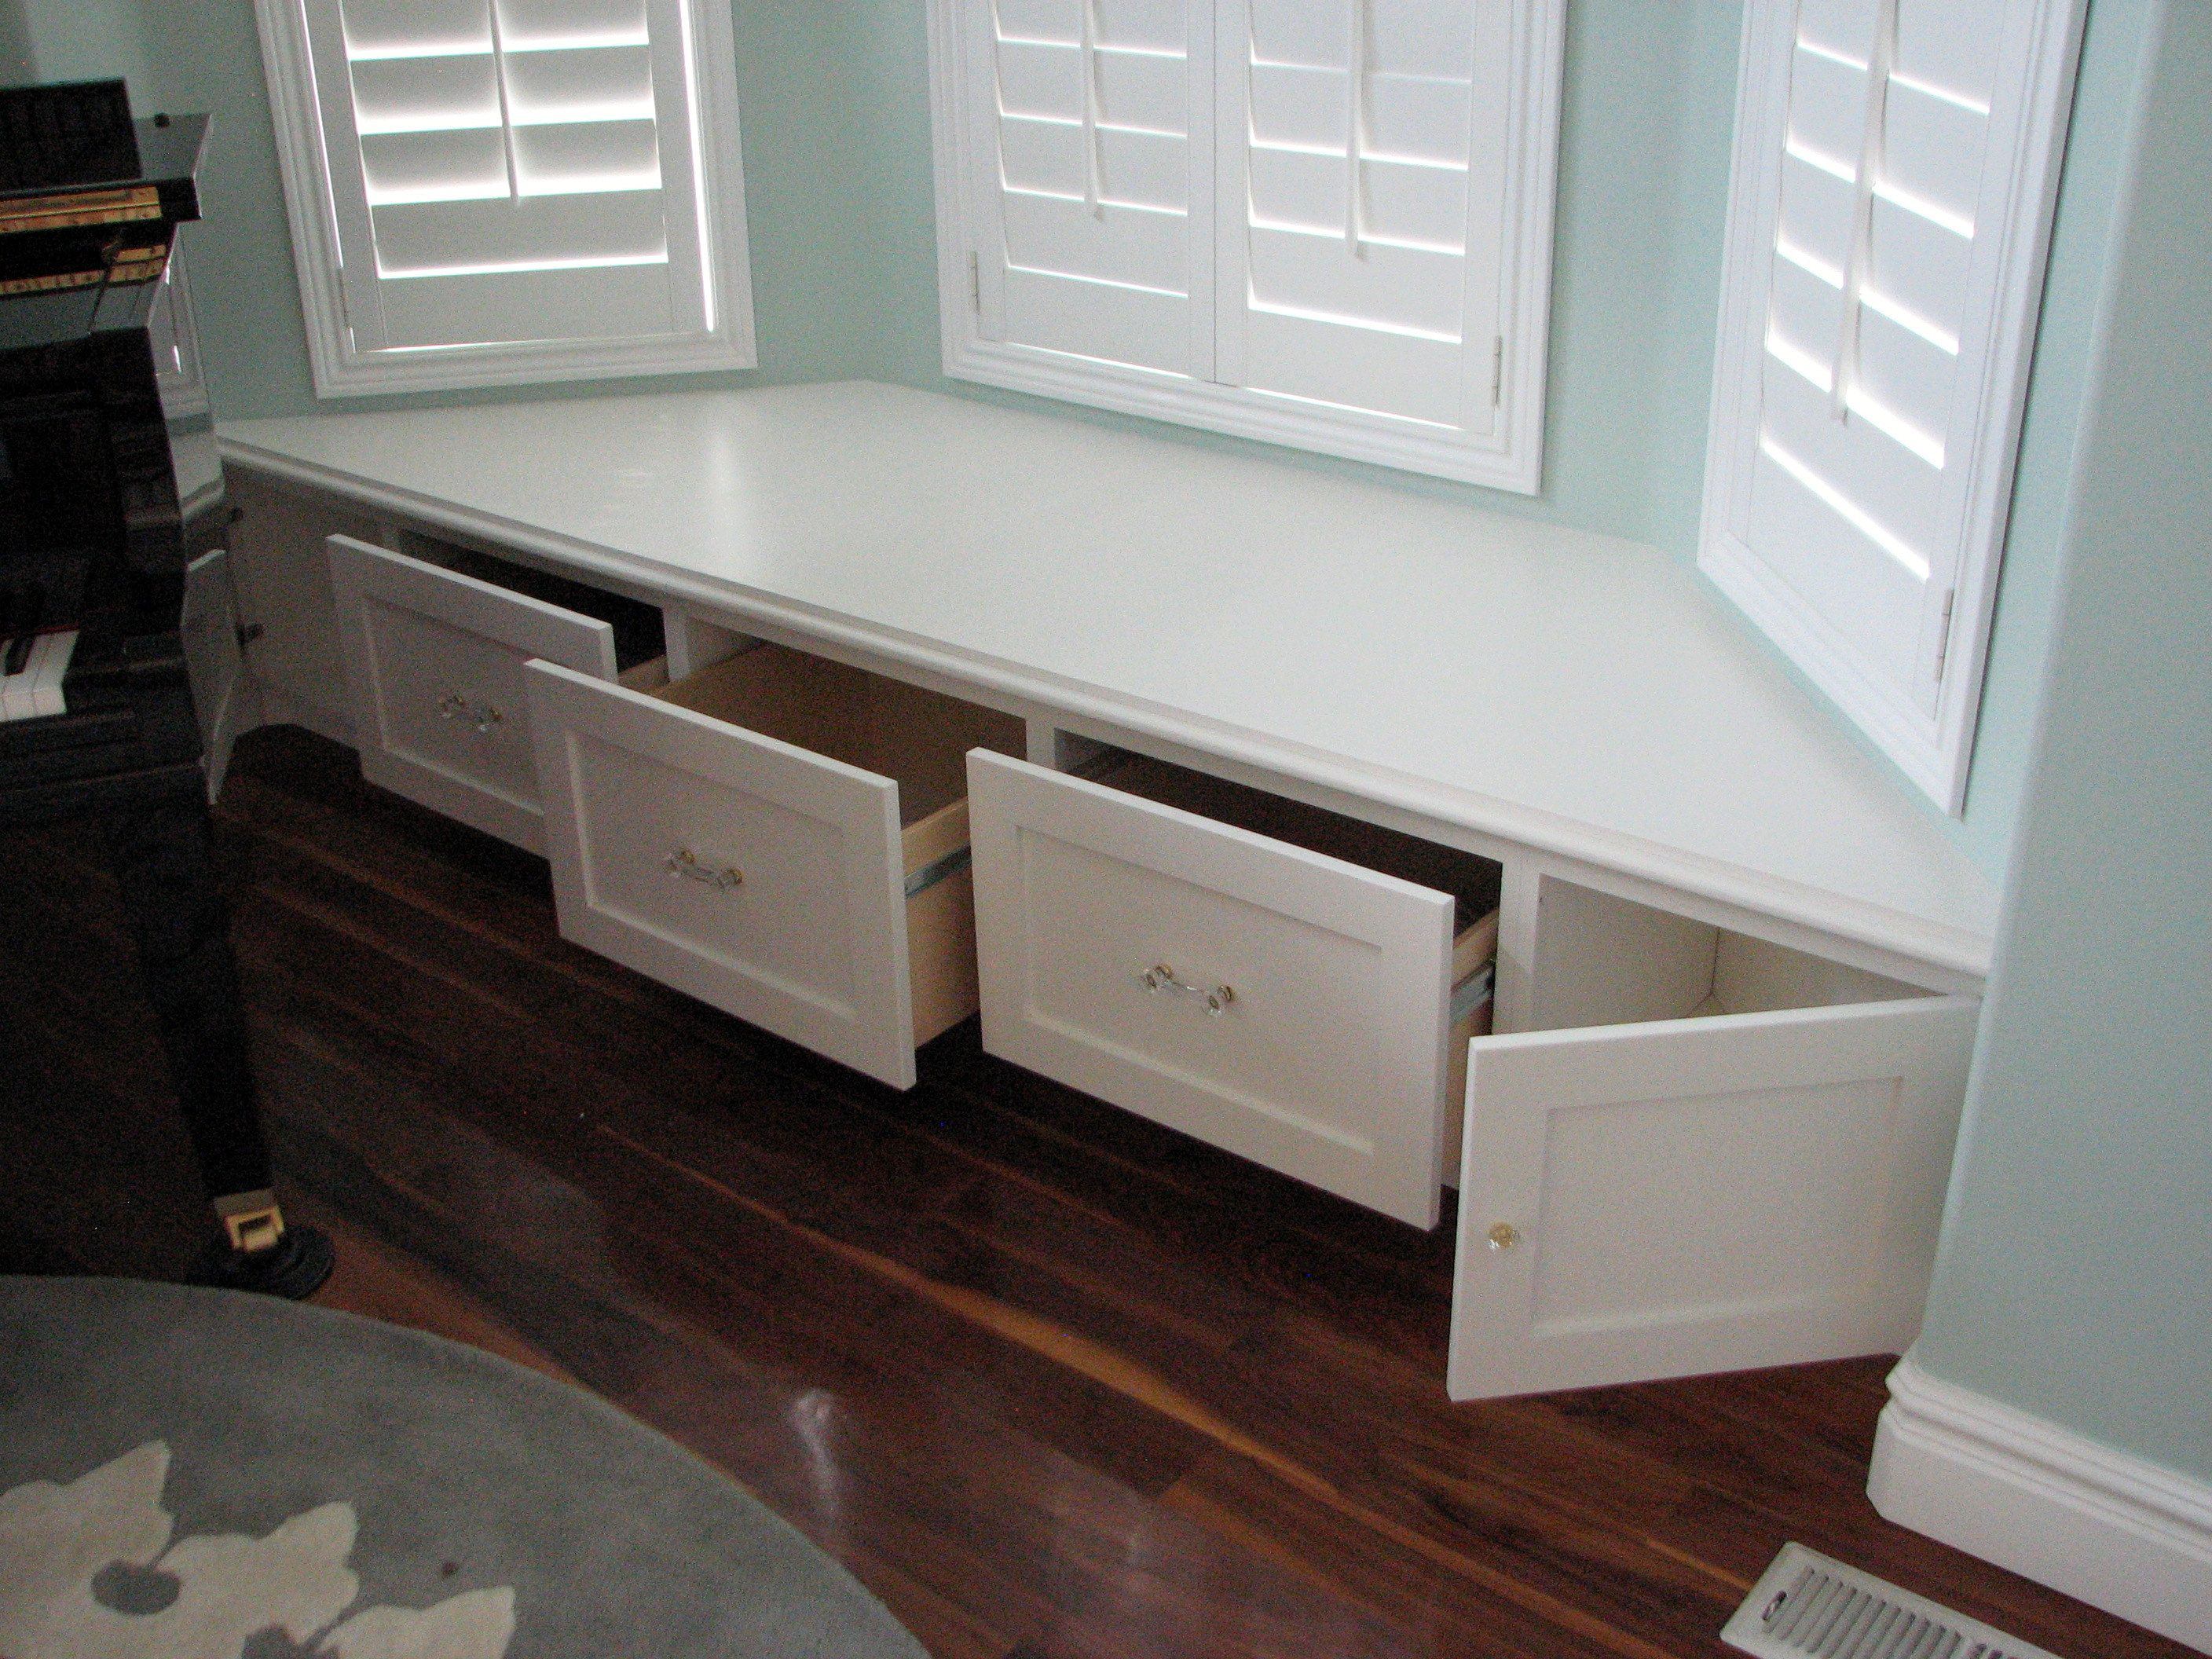 window chair furniture. built in bay window seat storage turned into drawers for easier accessibility i would love to turn the trunks like this chair furniture